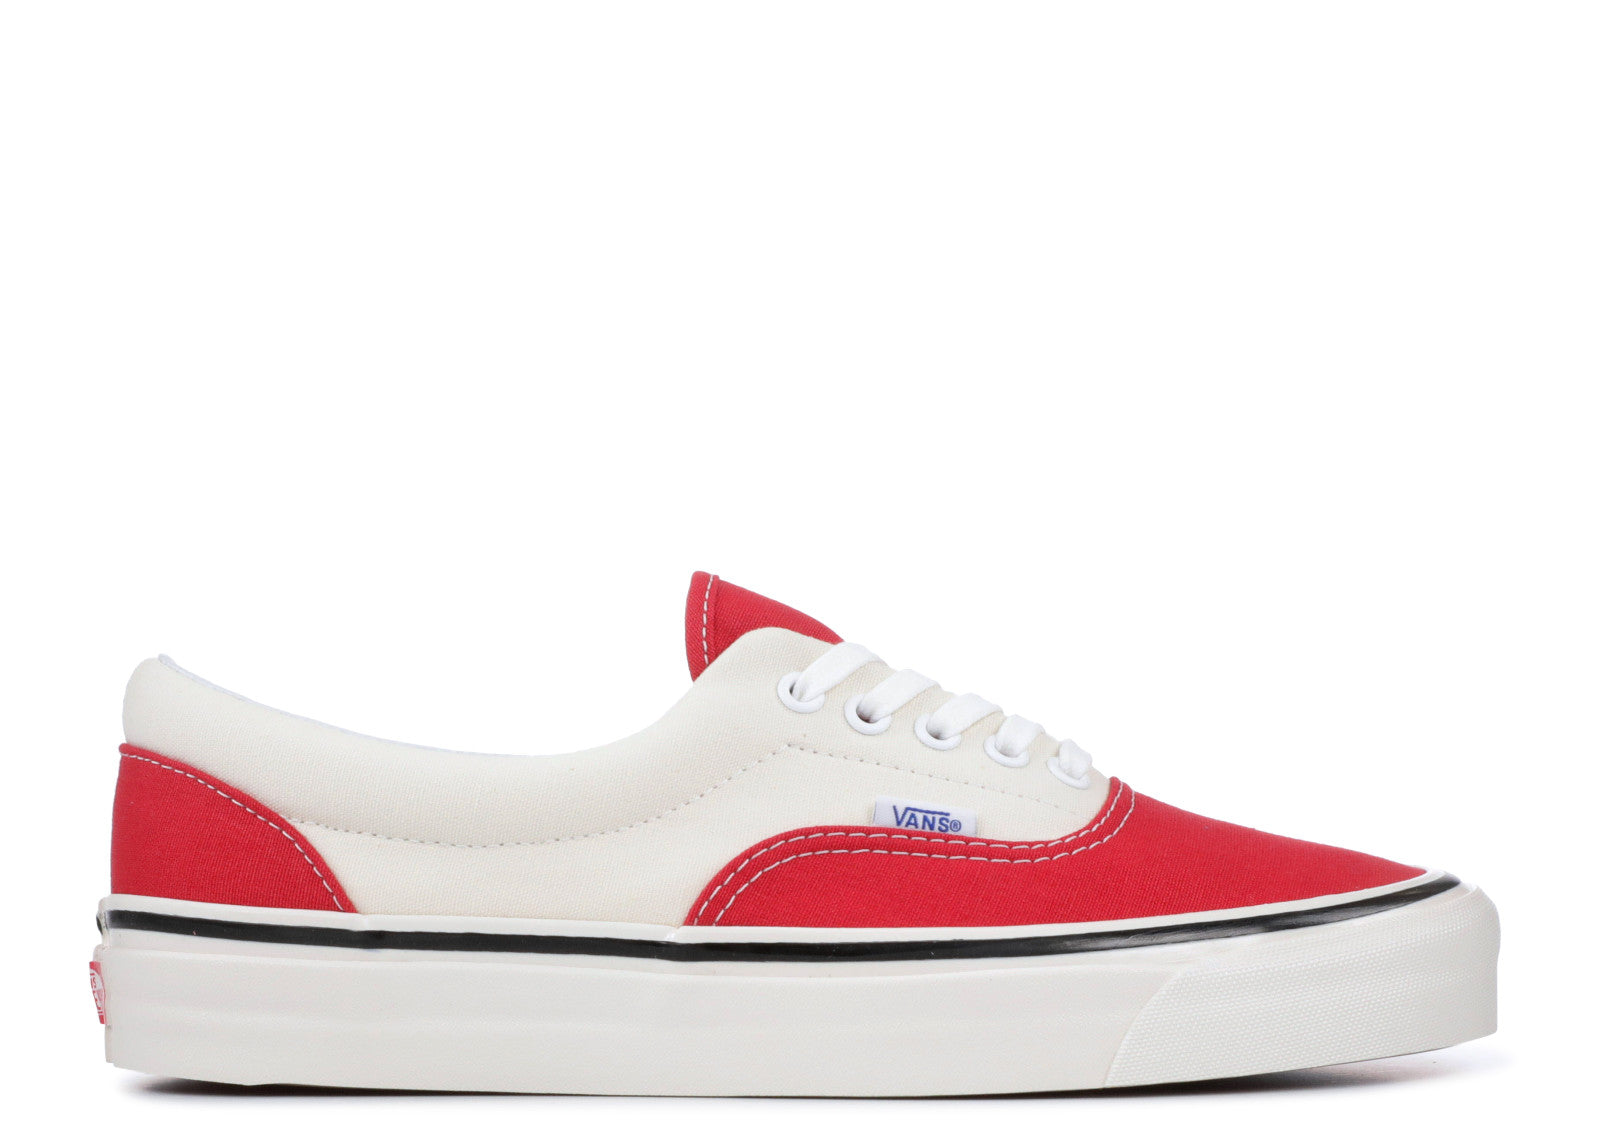 f20a13e0c1 Vans Era 95 Dx (ANAHEIM FACTORY)  OG RED   WHITE - 12amrun